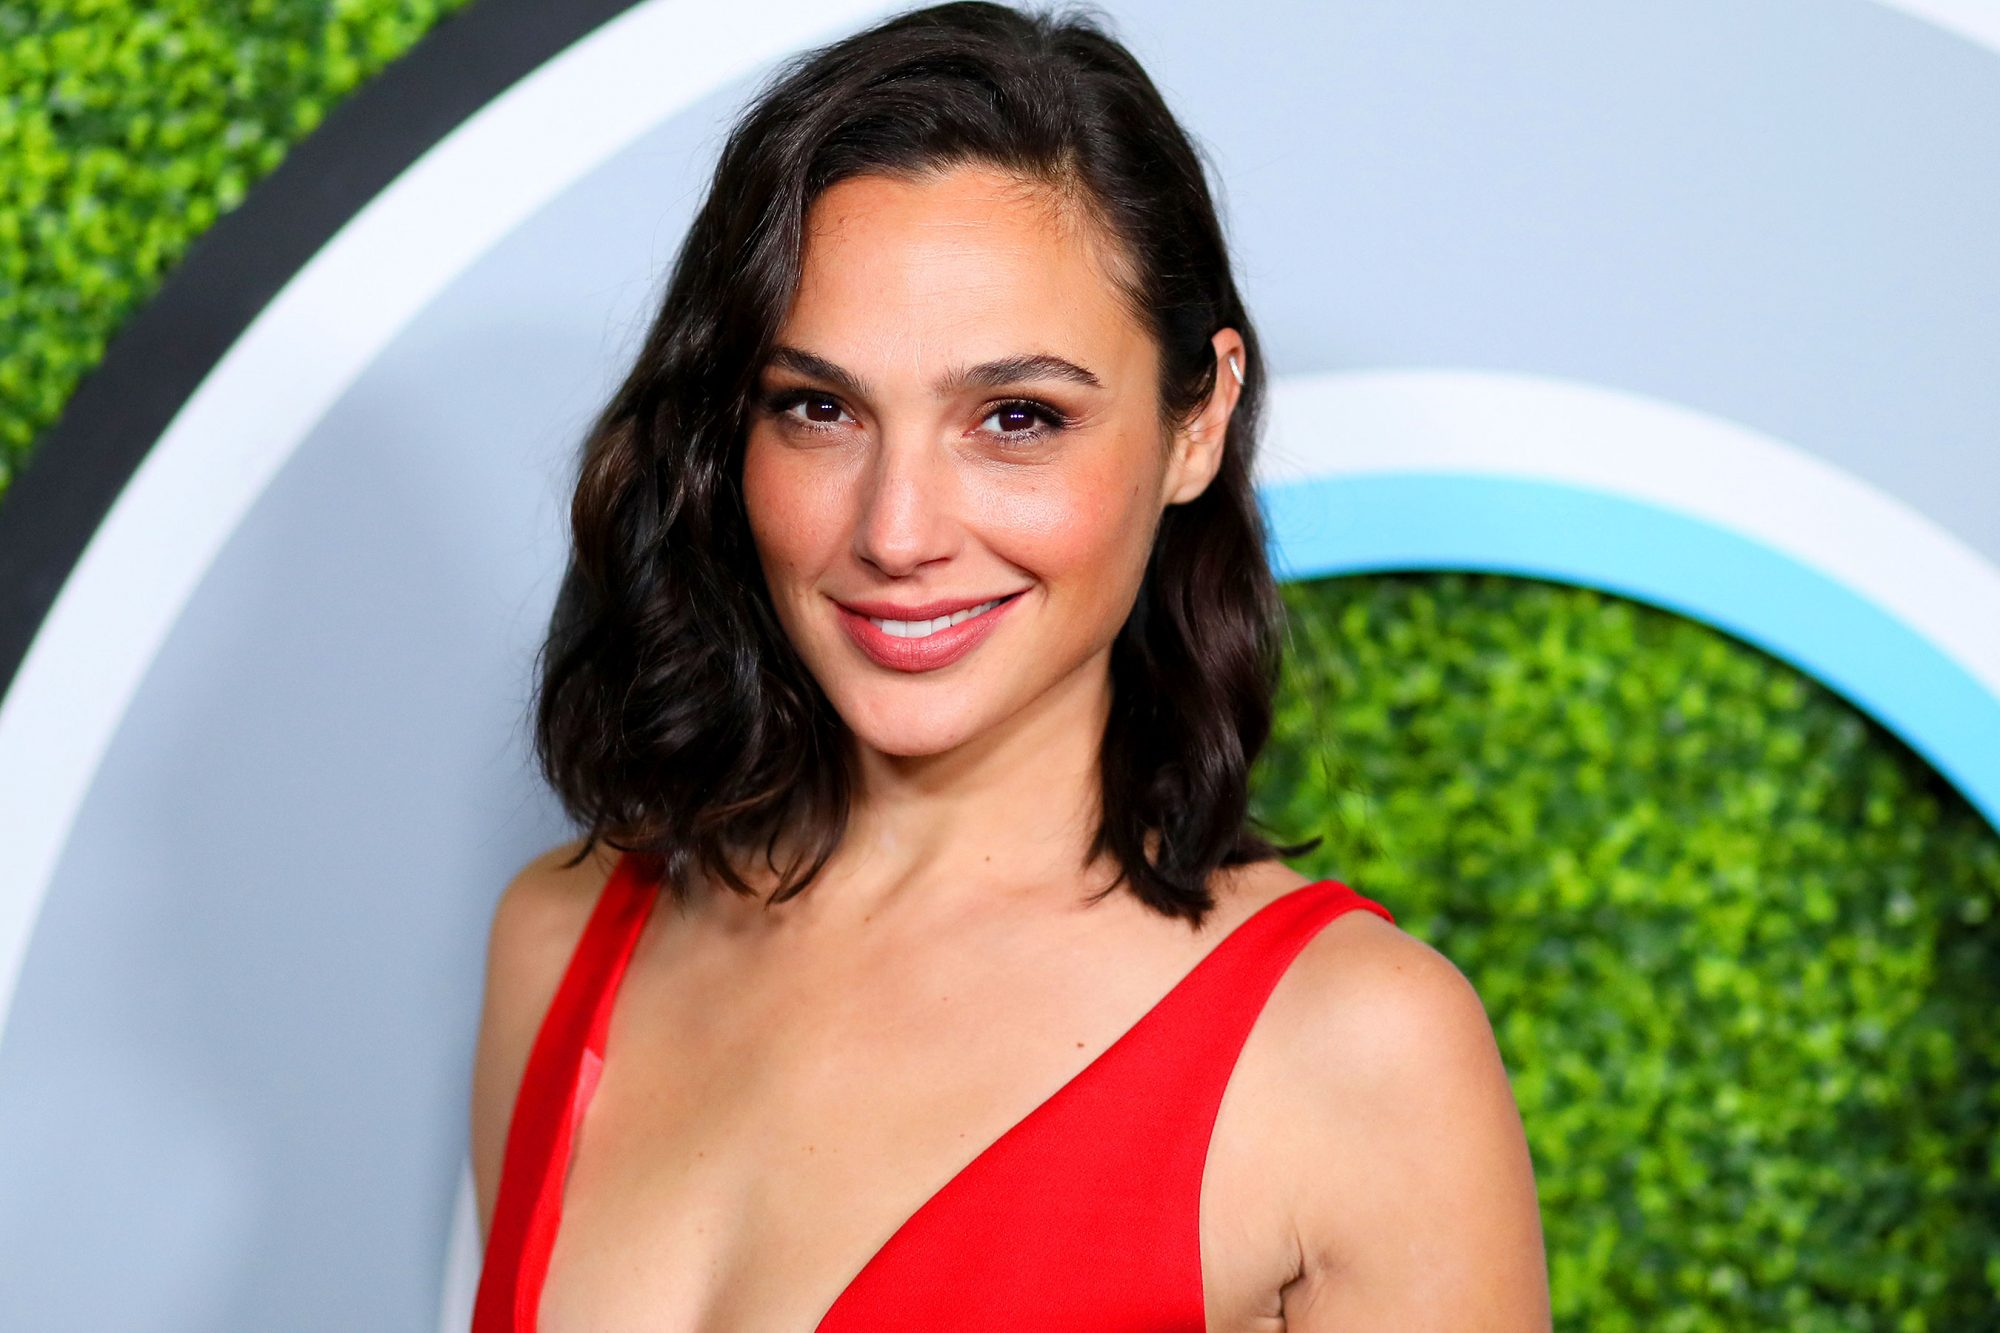 HOLLYWOOD, CA - DECEMBER 07: Gal Gadot attends the 2017 GQ Men of The Year Party on December 07, 2017 in Los Angeles, California. (Photo by JB Lacroix/ WireImage)